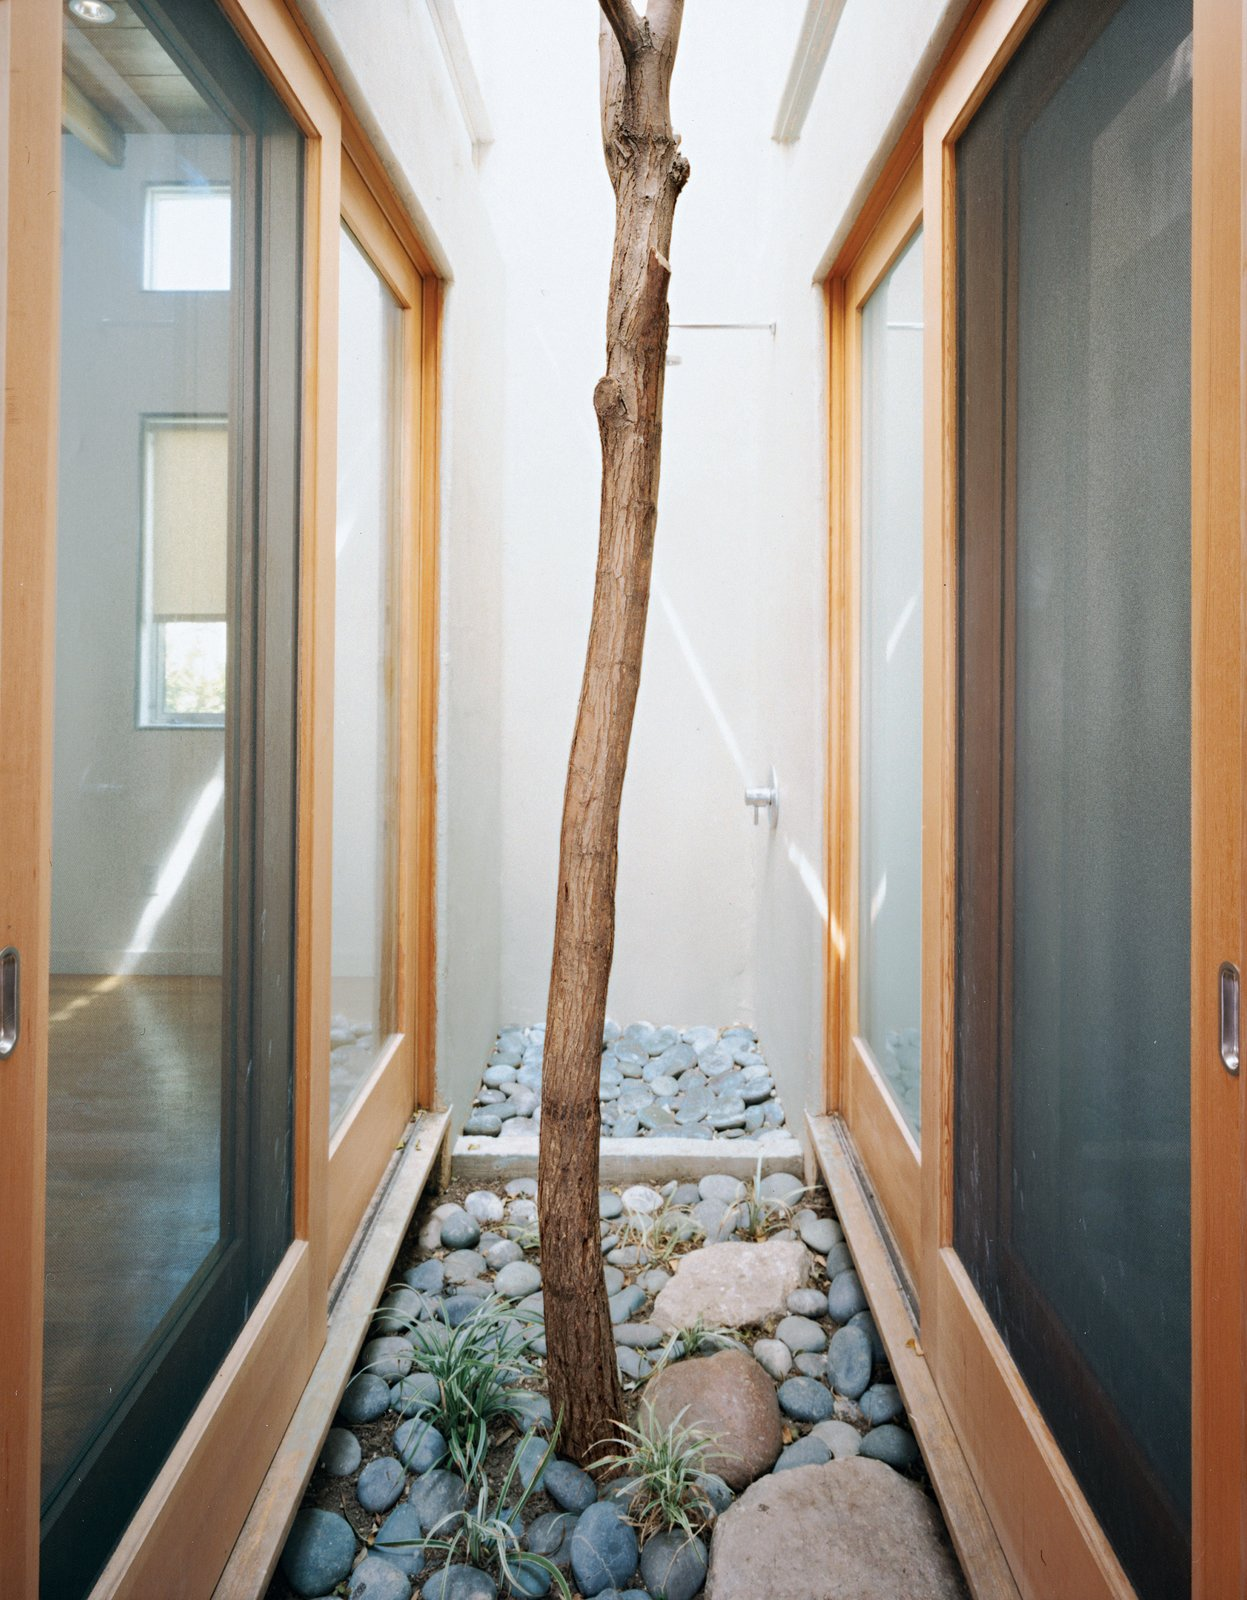 A Robinia tree moved from another part of the site grows in this pocket courtyard and thermal chimney in the heart of the house.  Space-Saving Sliding Doors by Erika Heet from Casa Study House #1